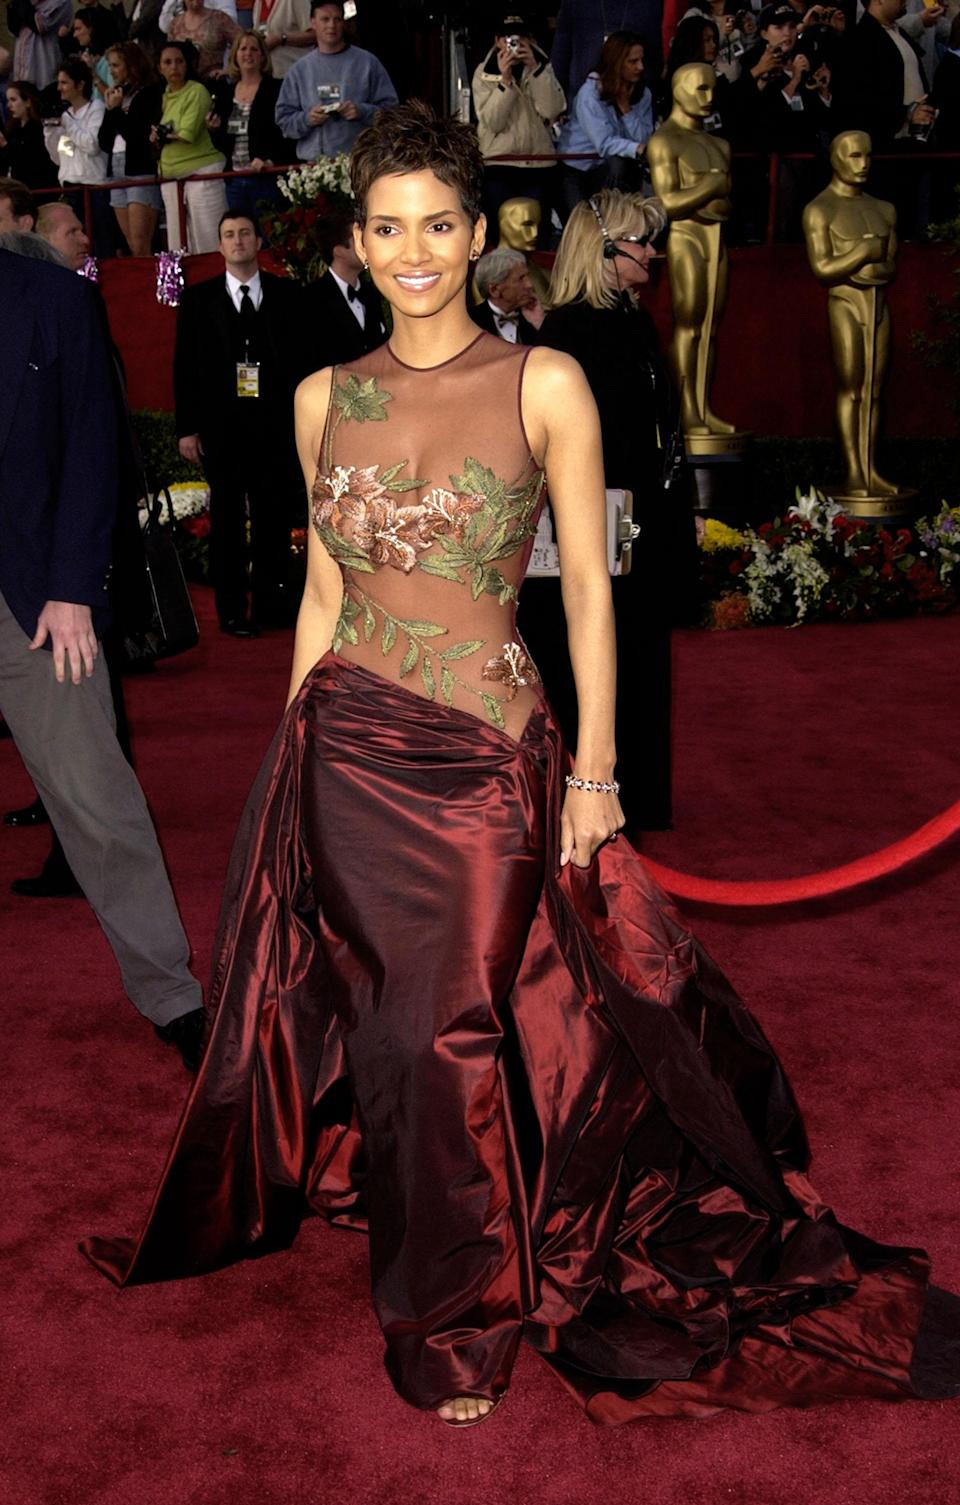 Probably her most memorable dress to date, Halle Berry dared to brave (almost) all of her top half in this semi-sheer gown in 2002.